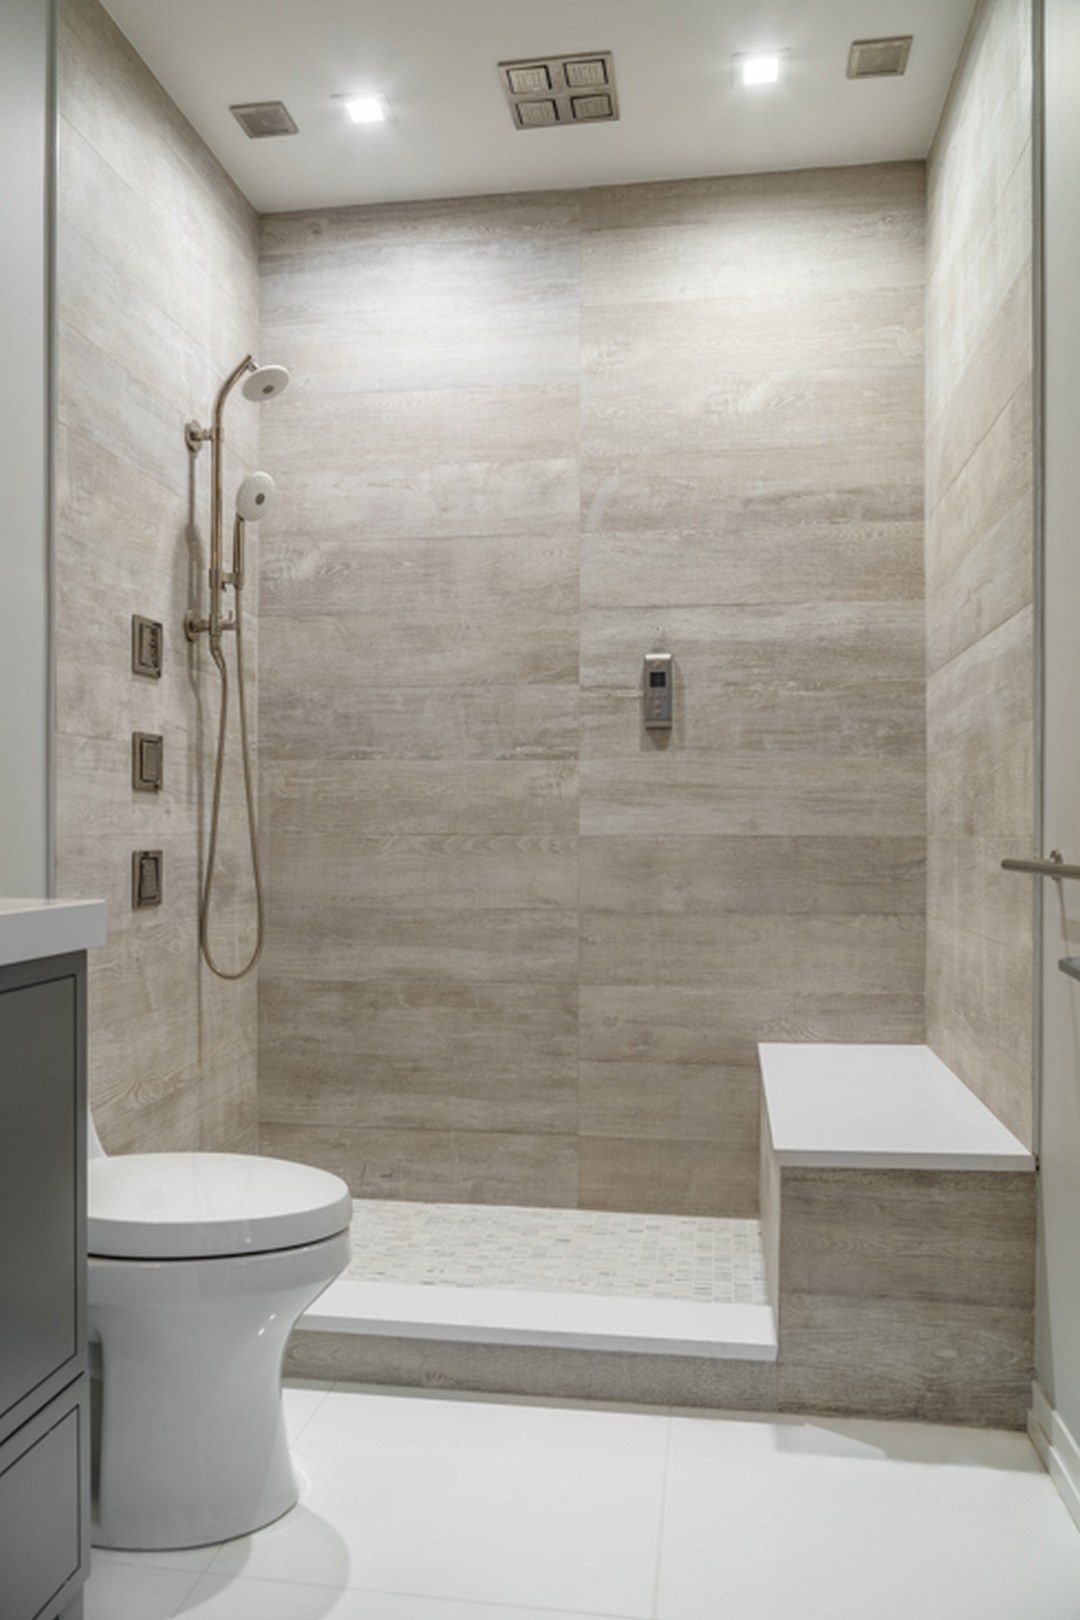 Why You Should Remodel Your Bathroom | Best bathroom tiles ...